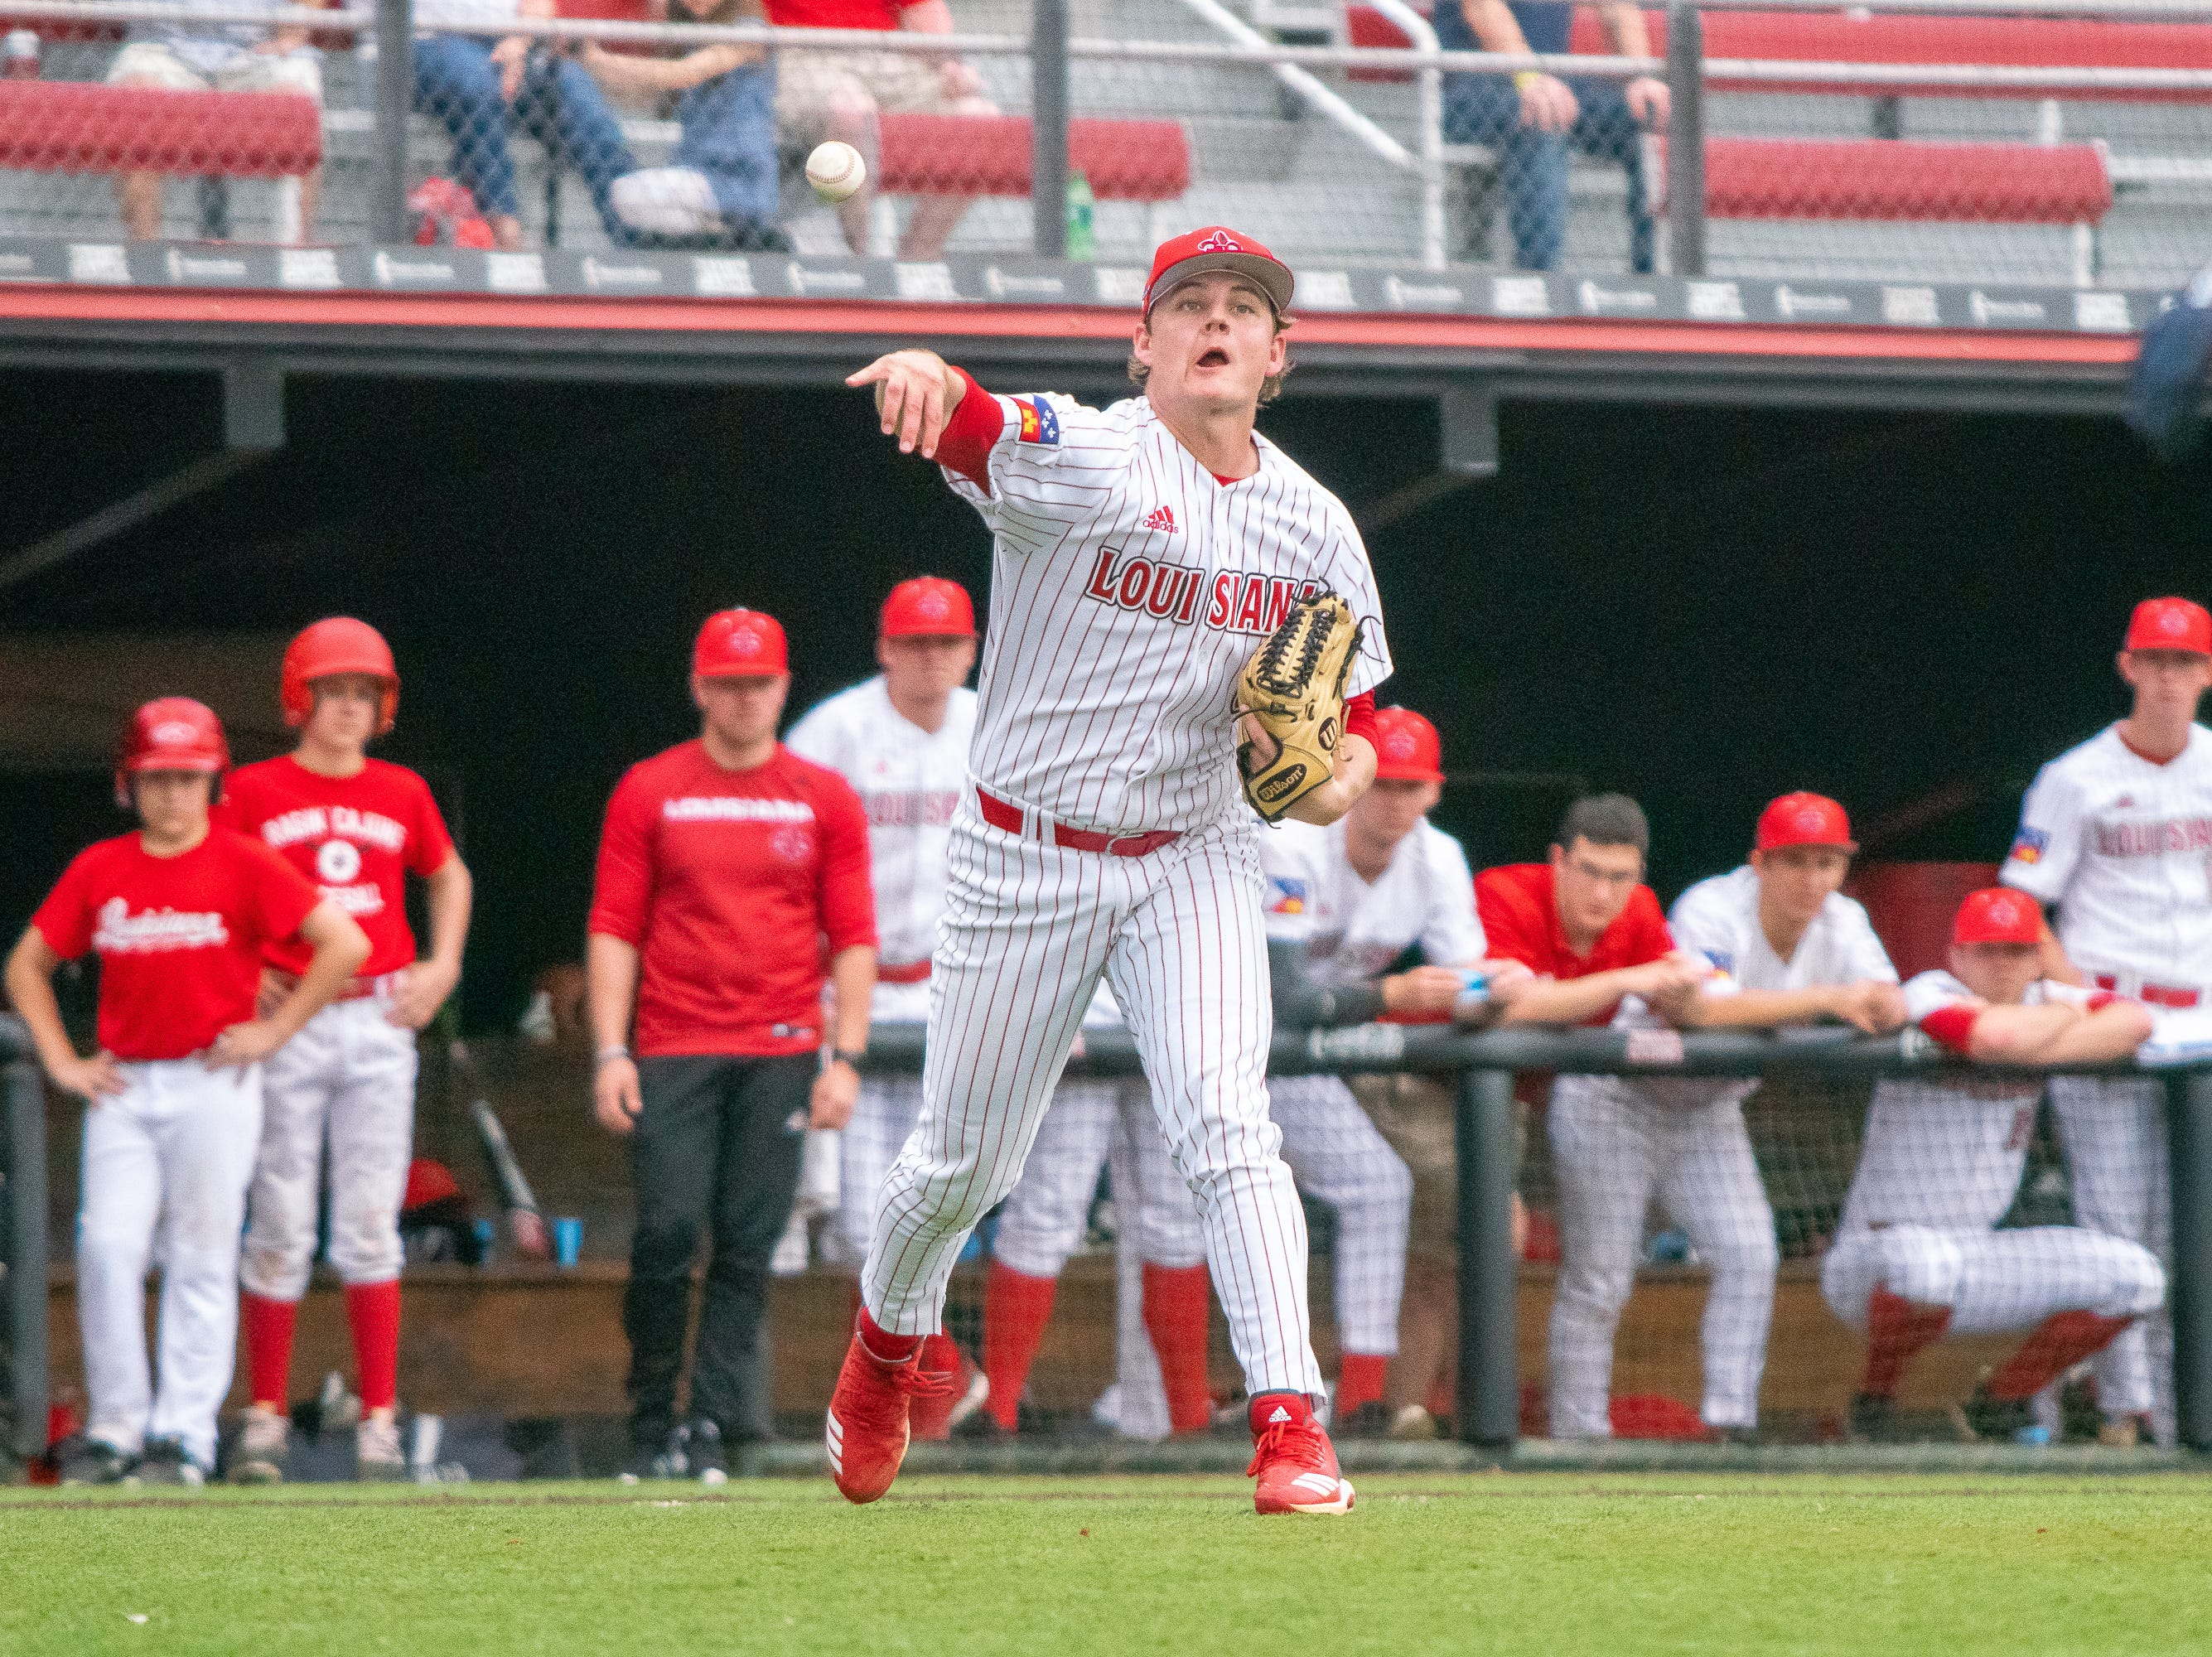 UL's pitcher Blake Schultz throws to first base to get the runner out as the Ragin' Cajuns take on the Loyola Marymount Lions at M.L. Tigue Moore Field on March 10, 2019.